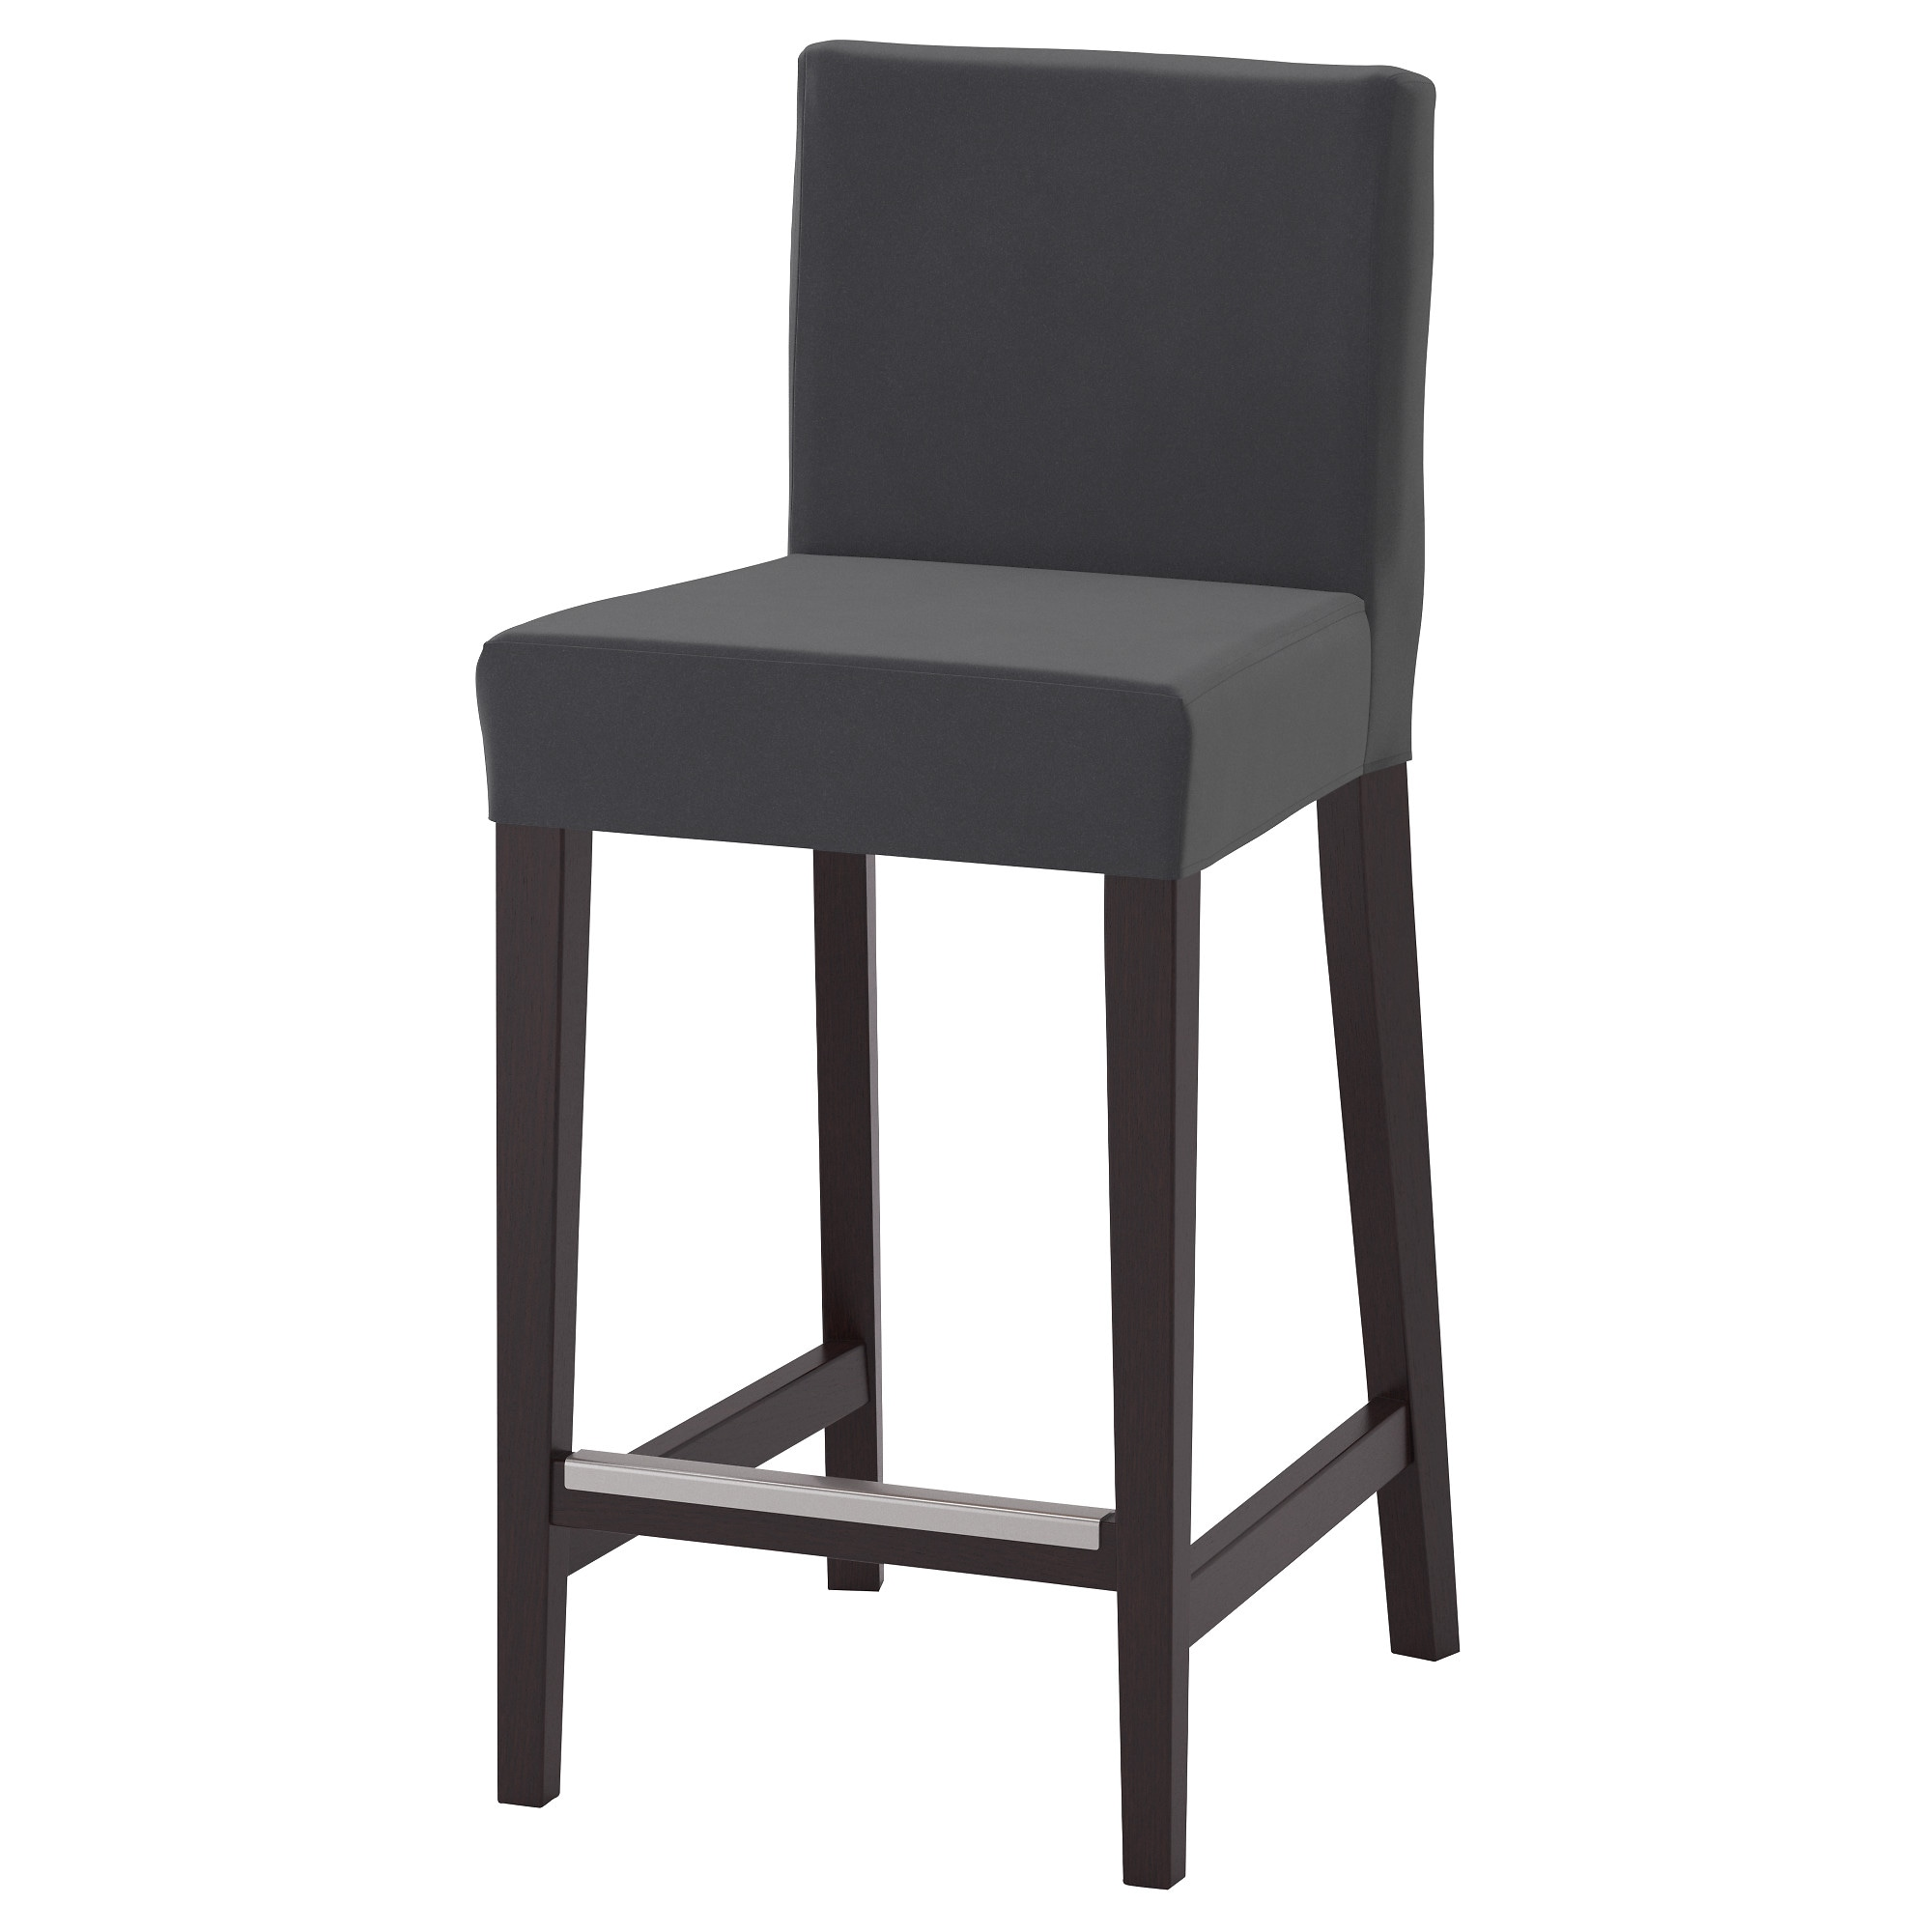 HENRIKSDAL bar stool with backrest brown-black Djuparp dark gray Tested for  sc 1 st  Ikea & Bar Stools - IKEA islam-shia.org